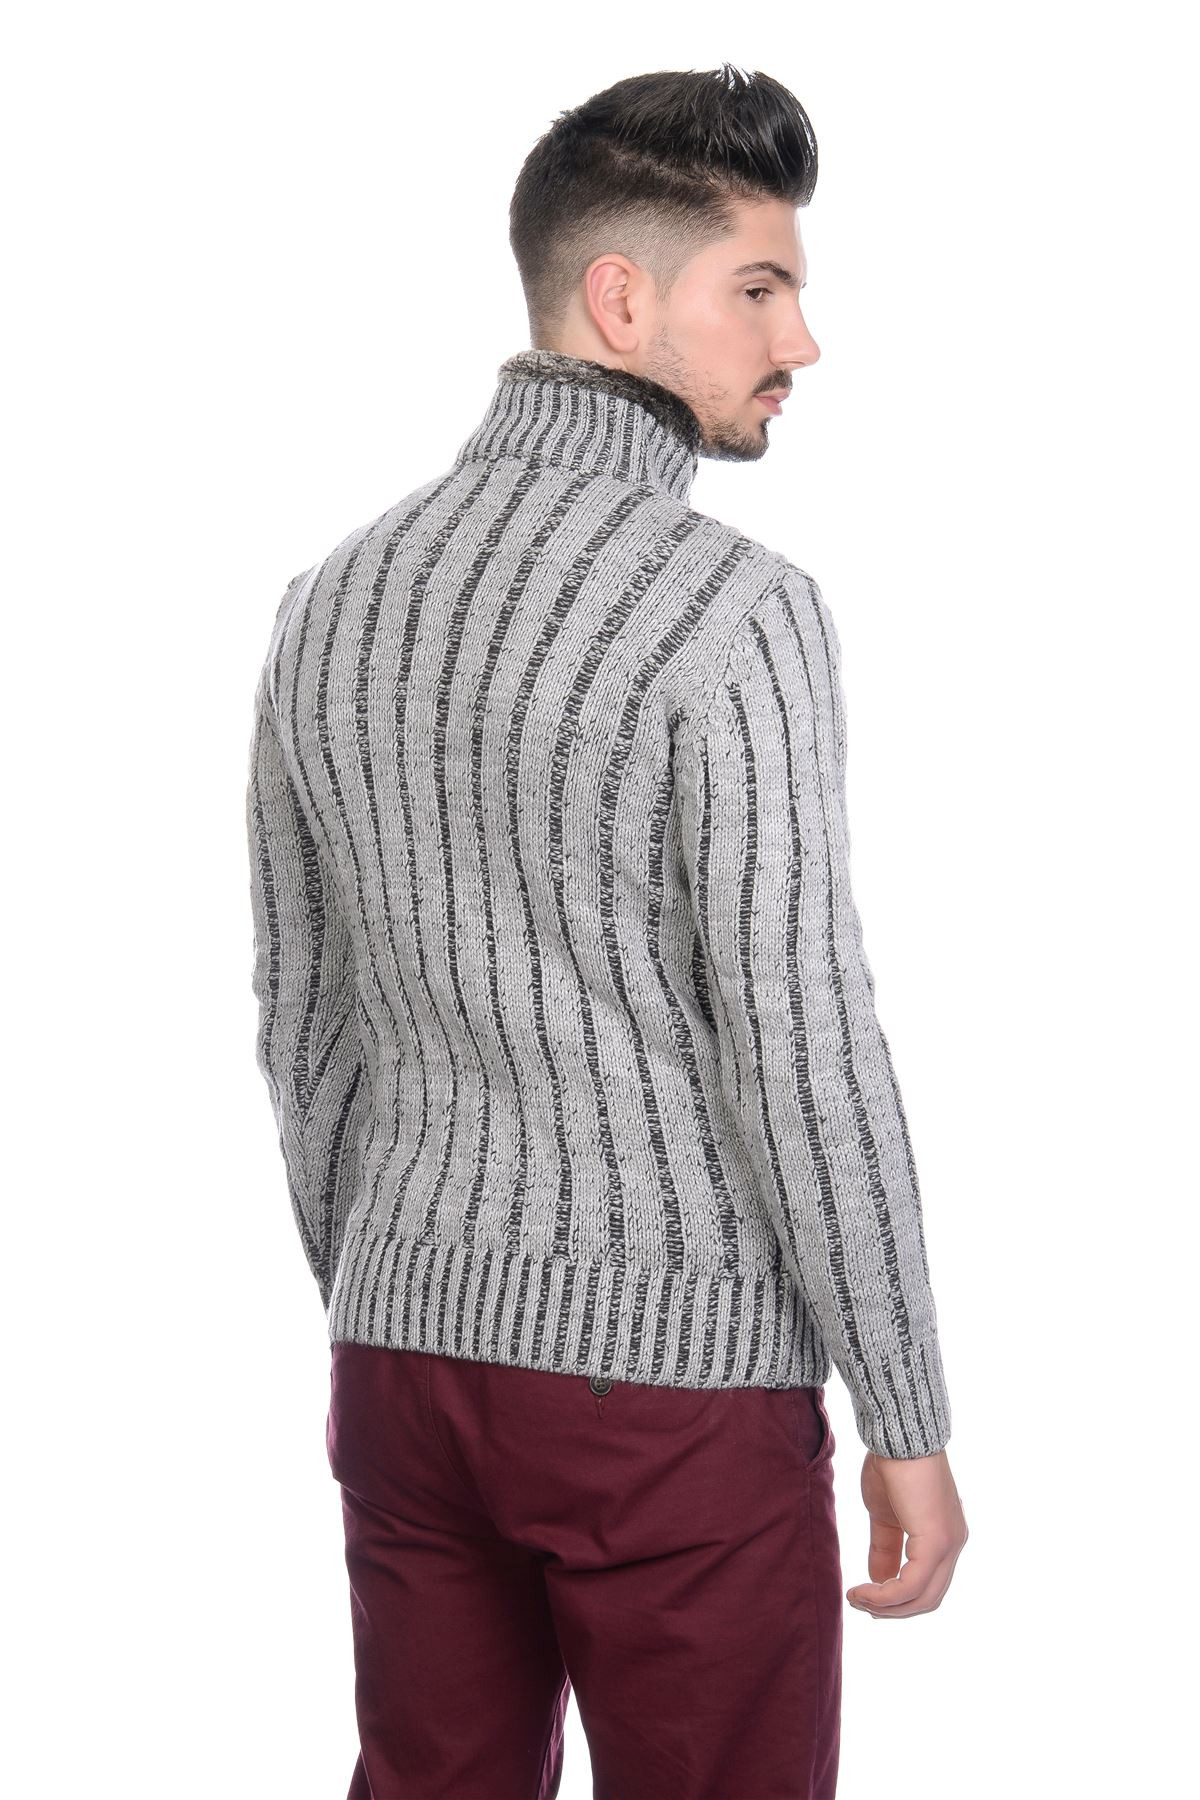 BNWT Mens Designer Cable Knit Jumper Cardigan Sweater with